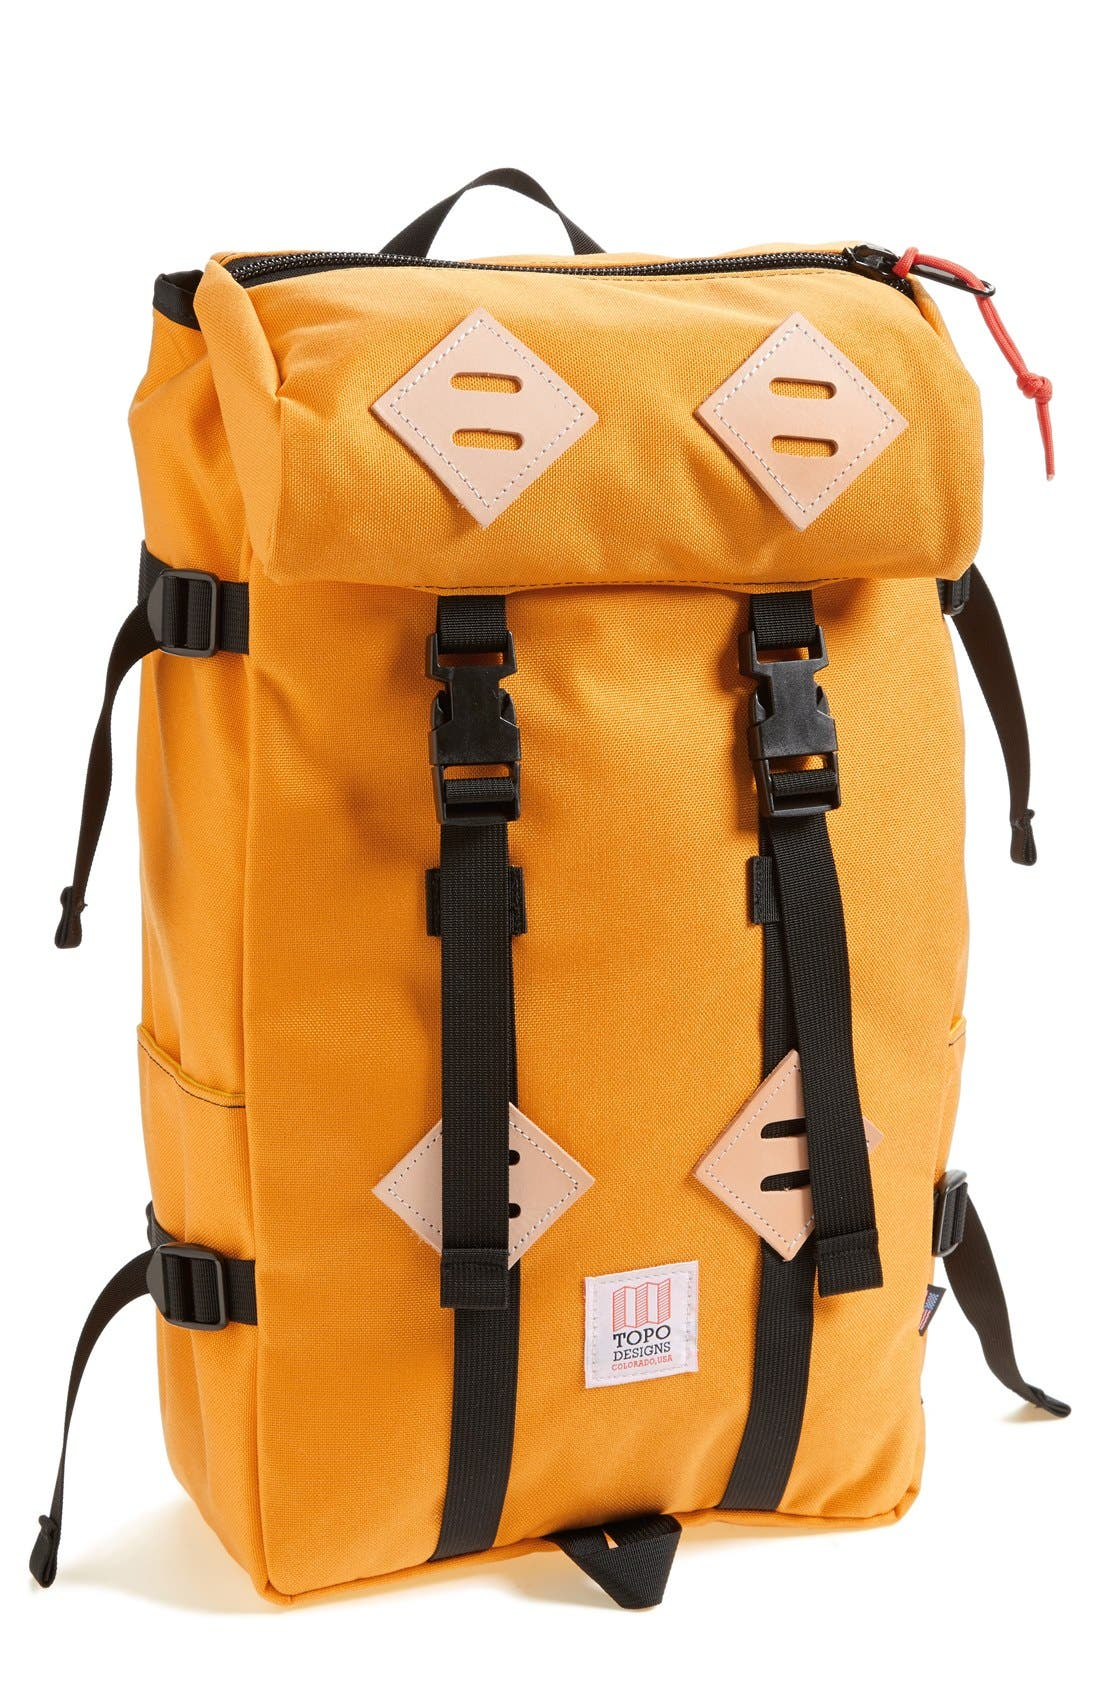 'Klettersack' Backpack,                             Main thumbnail 1, color,                             SAFFRON